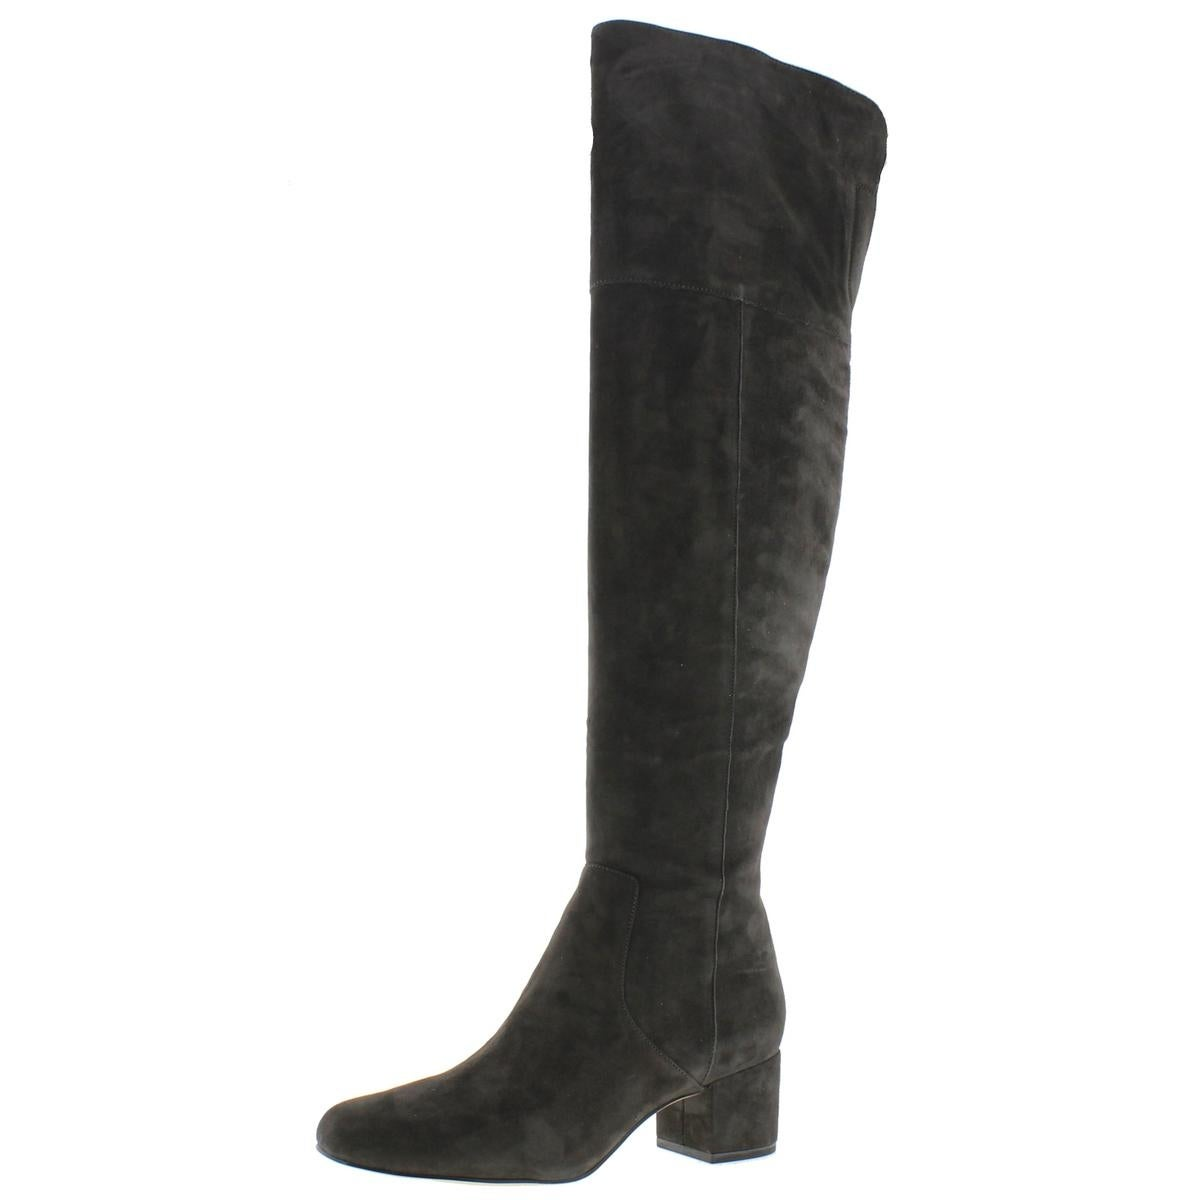 aa095c98628d21 Shop Sam Edelman Womens Elina Over-The-Knee Boots - Free Shipping Today -  Overstock - 15455508